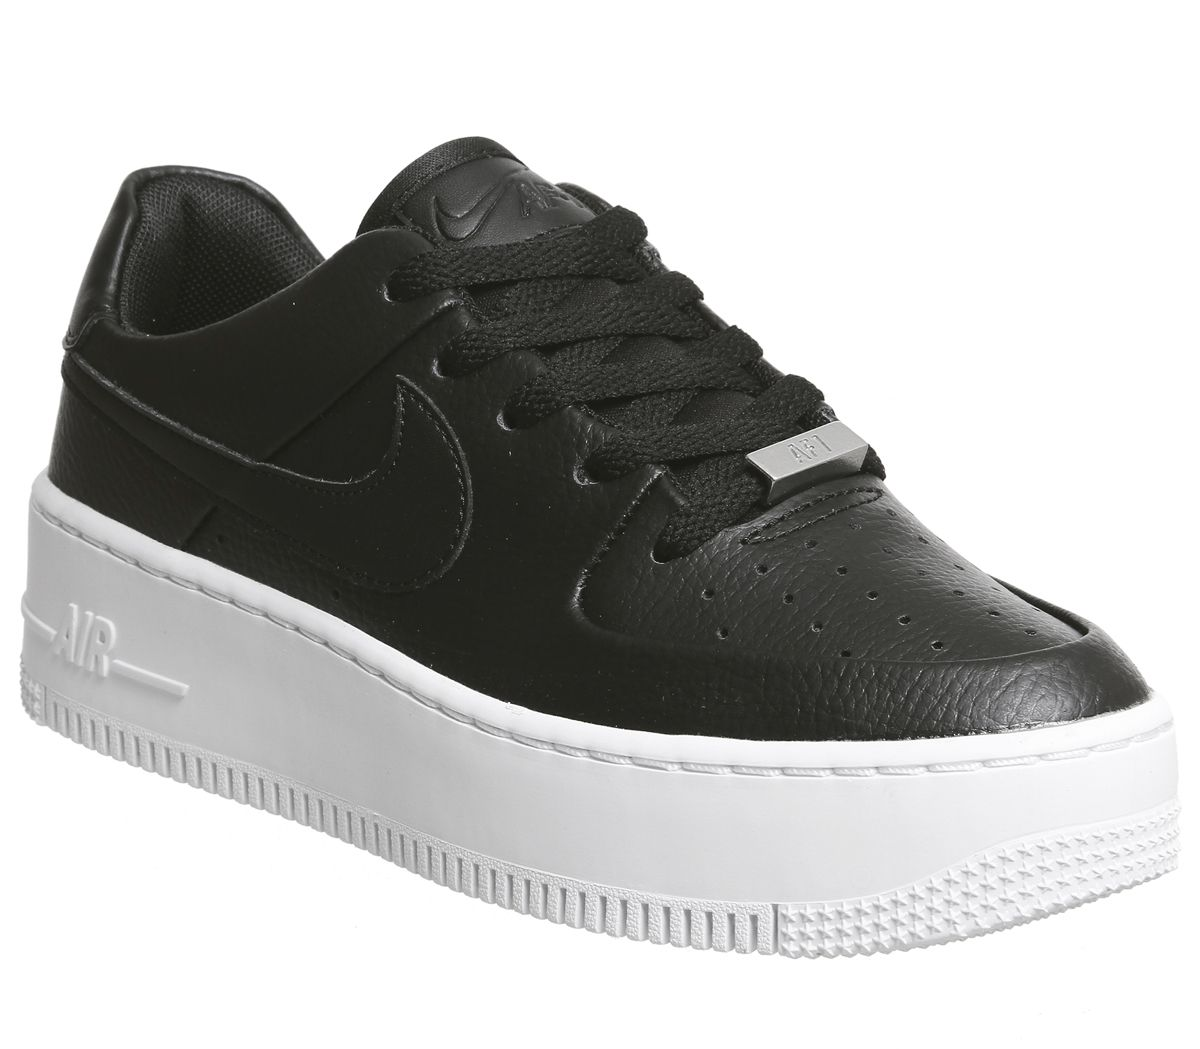 8af7592bff Nike Air Force 1 Sage Trainers Black Black White - Hers trainers